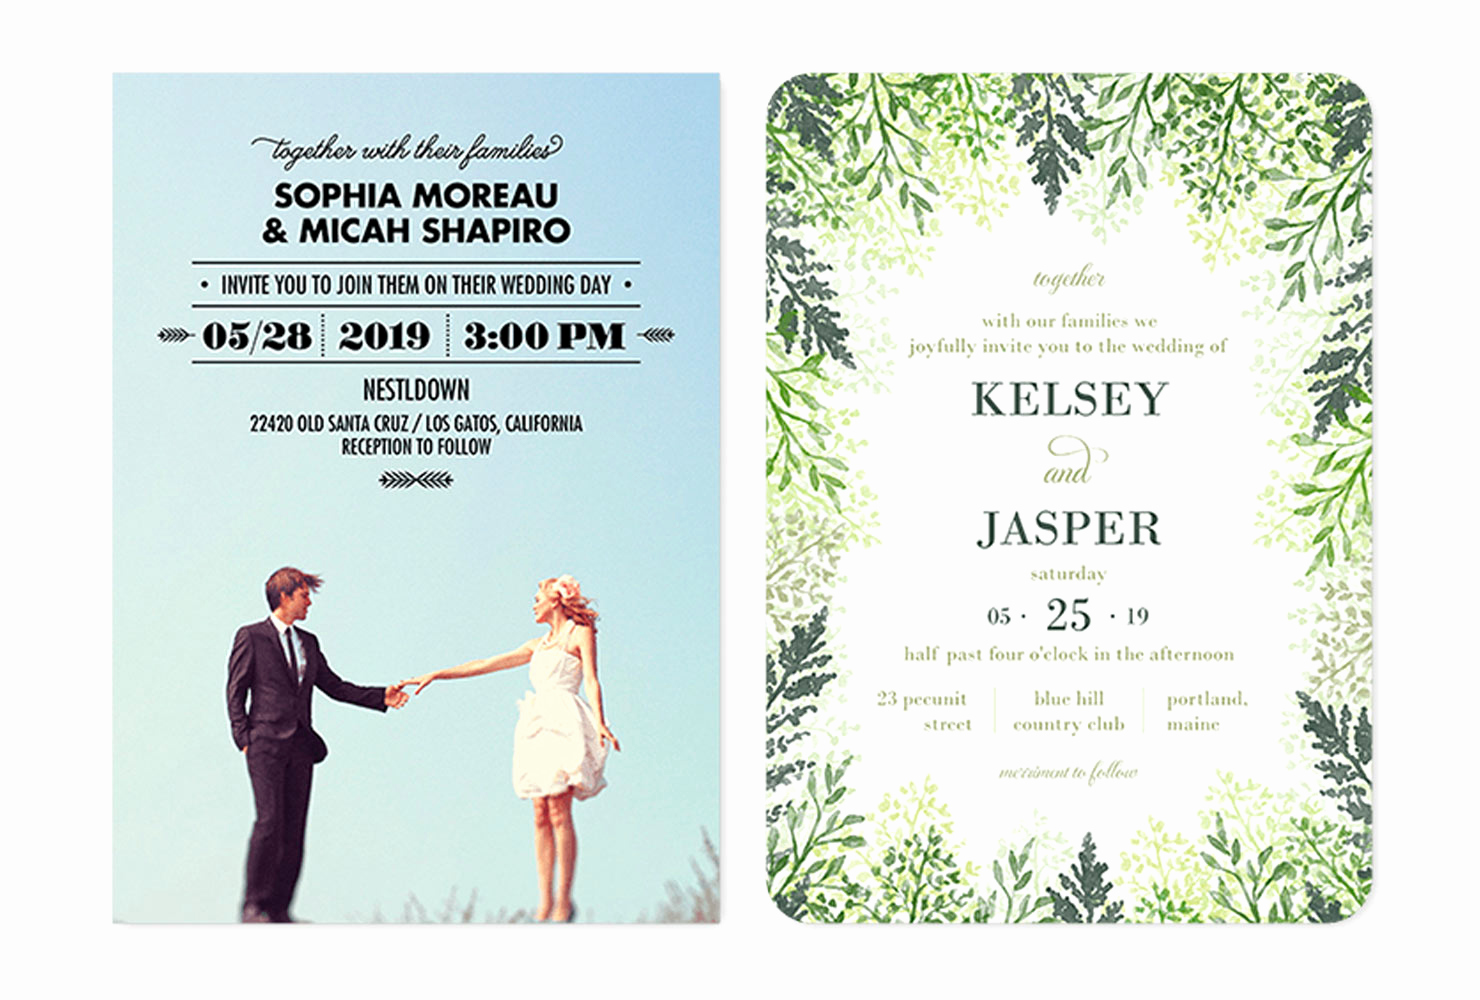 Wedding after Party Invitation Wording Best Of 35 Wedding Invitation Wording Examples 2019